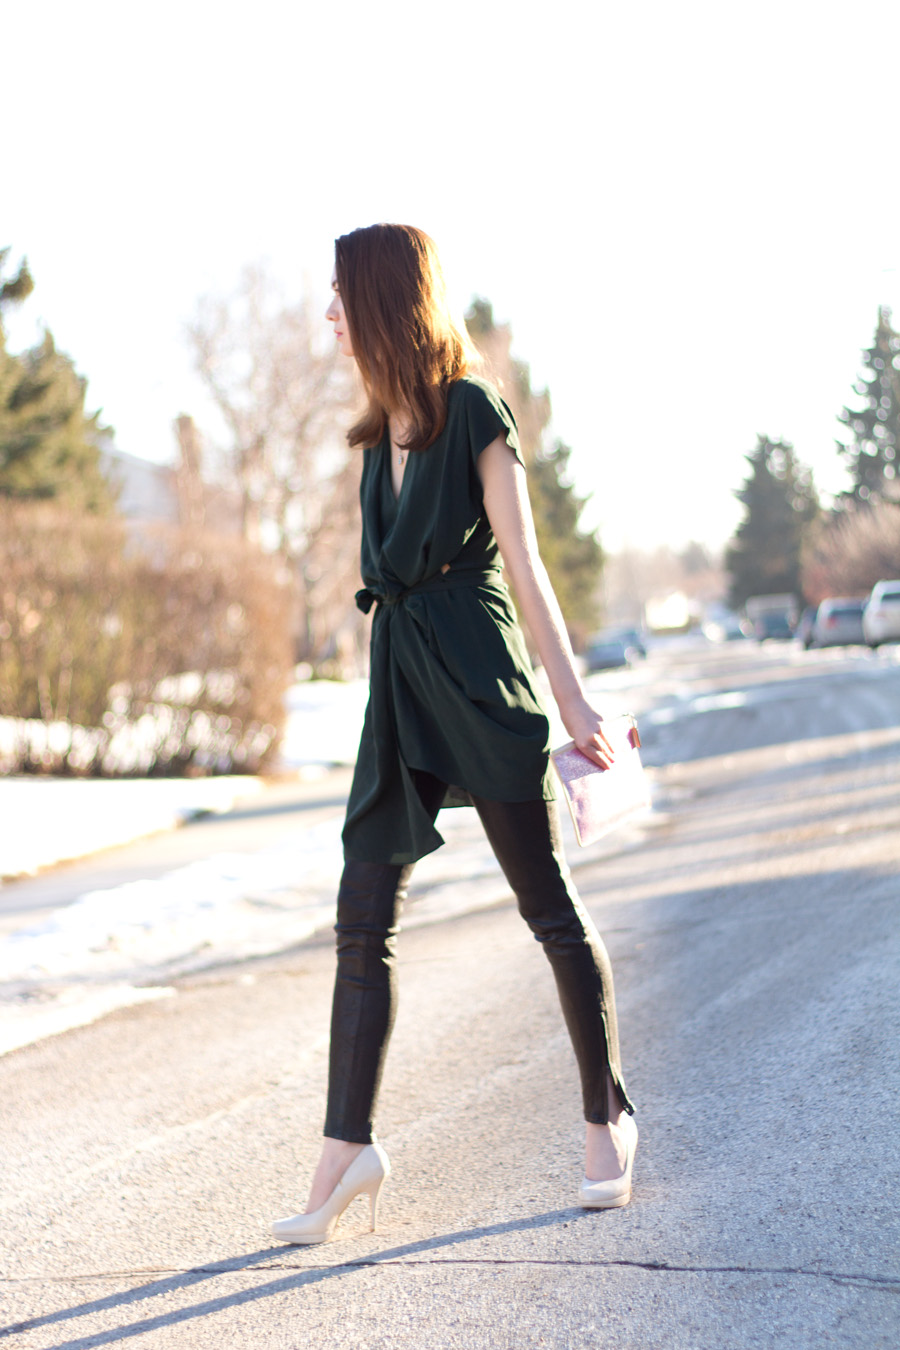 what to wear for valentines, date outfit, all saints, dee dress, j brand, leather pants, valentines outfit, galentines outfit, valentines day inspiration